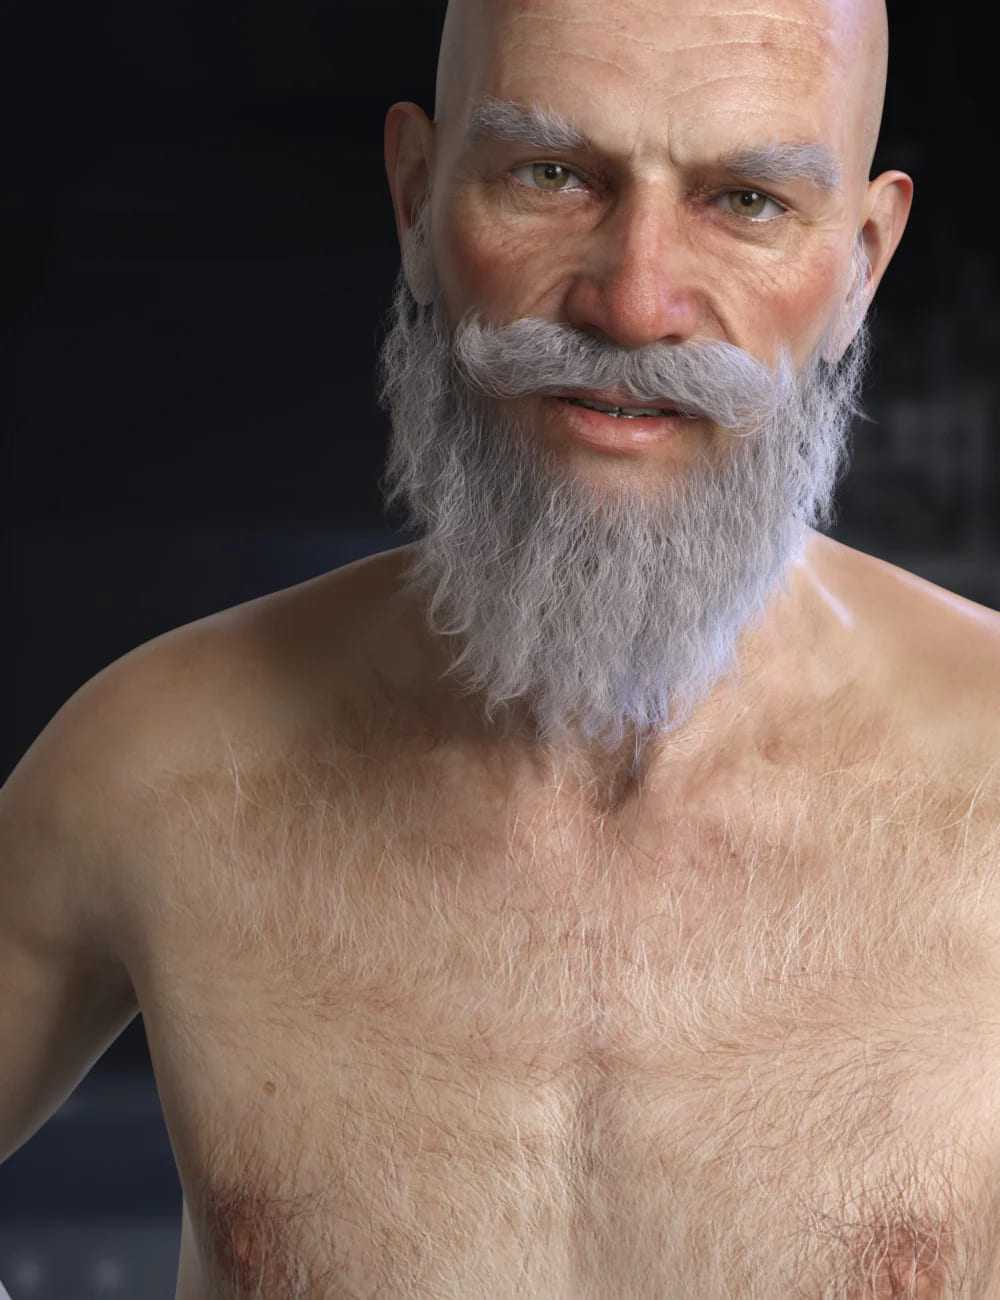 RY Frederic for Genesis 8 Male